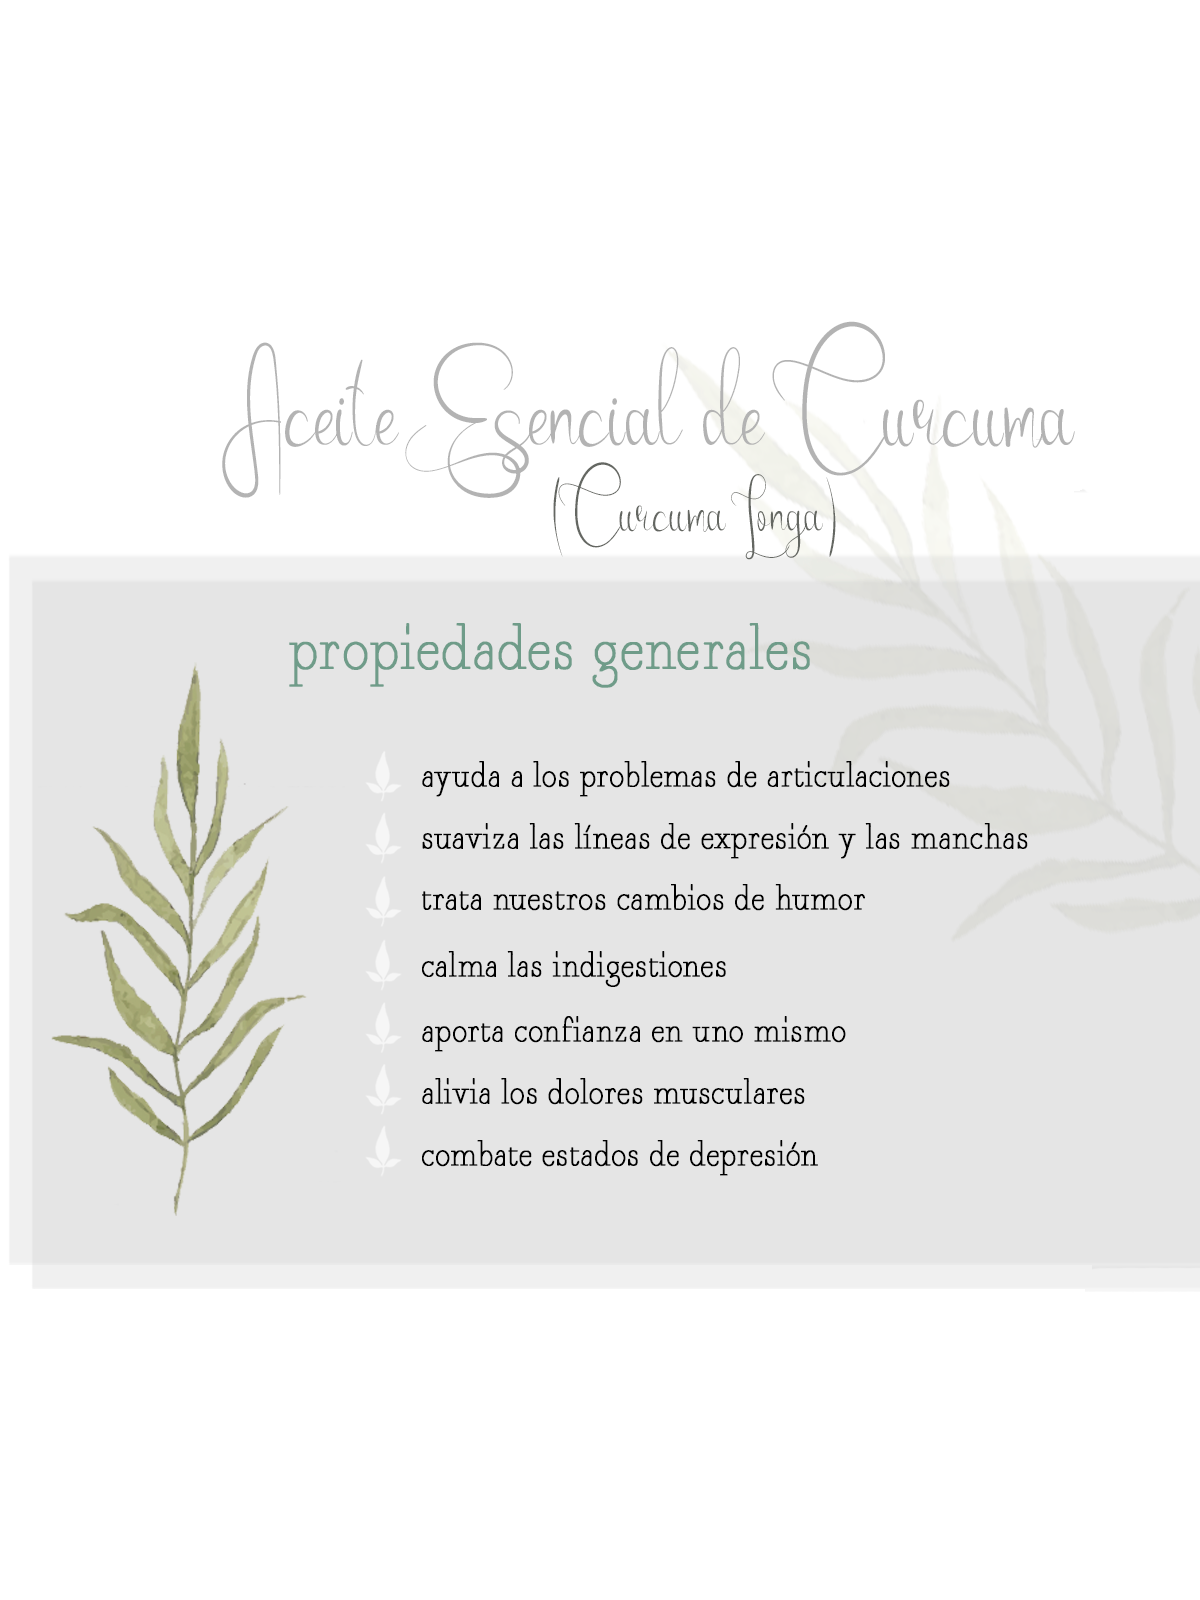 aromaterapia by naturals aceite esencial curcuma remedios naturales